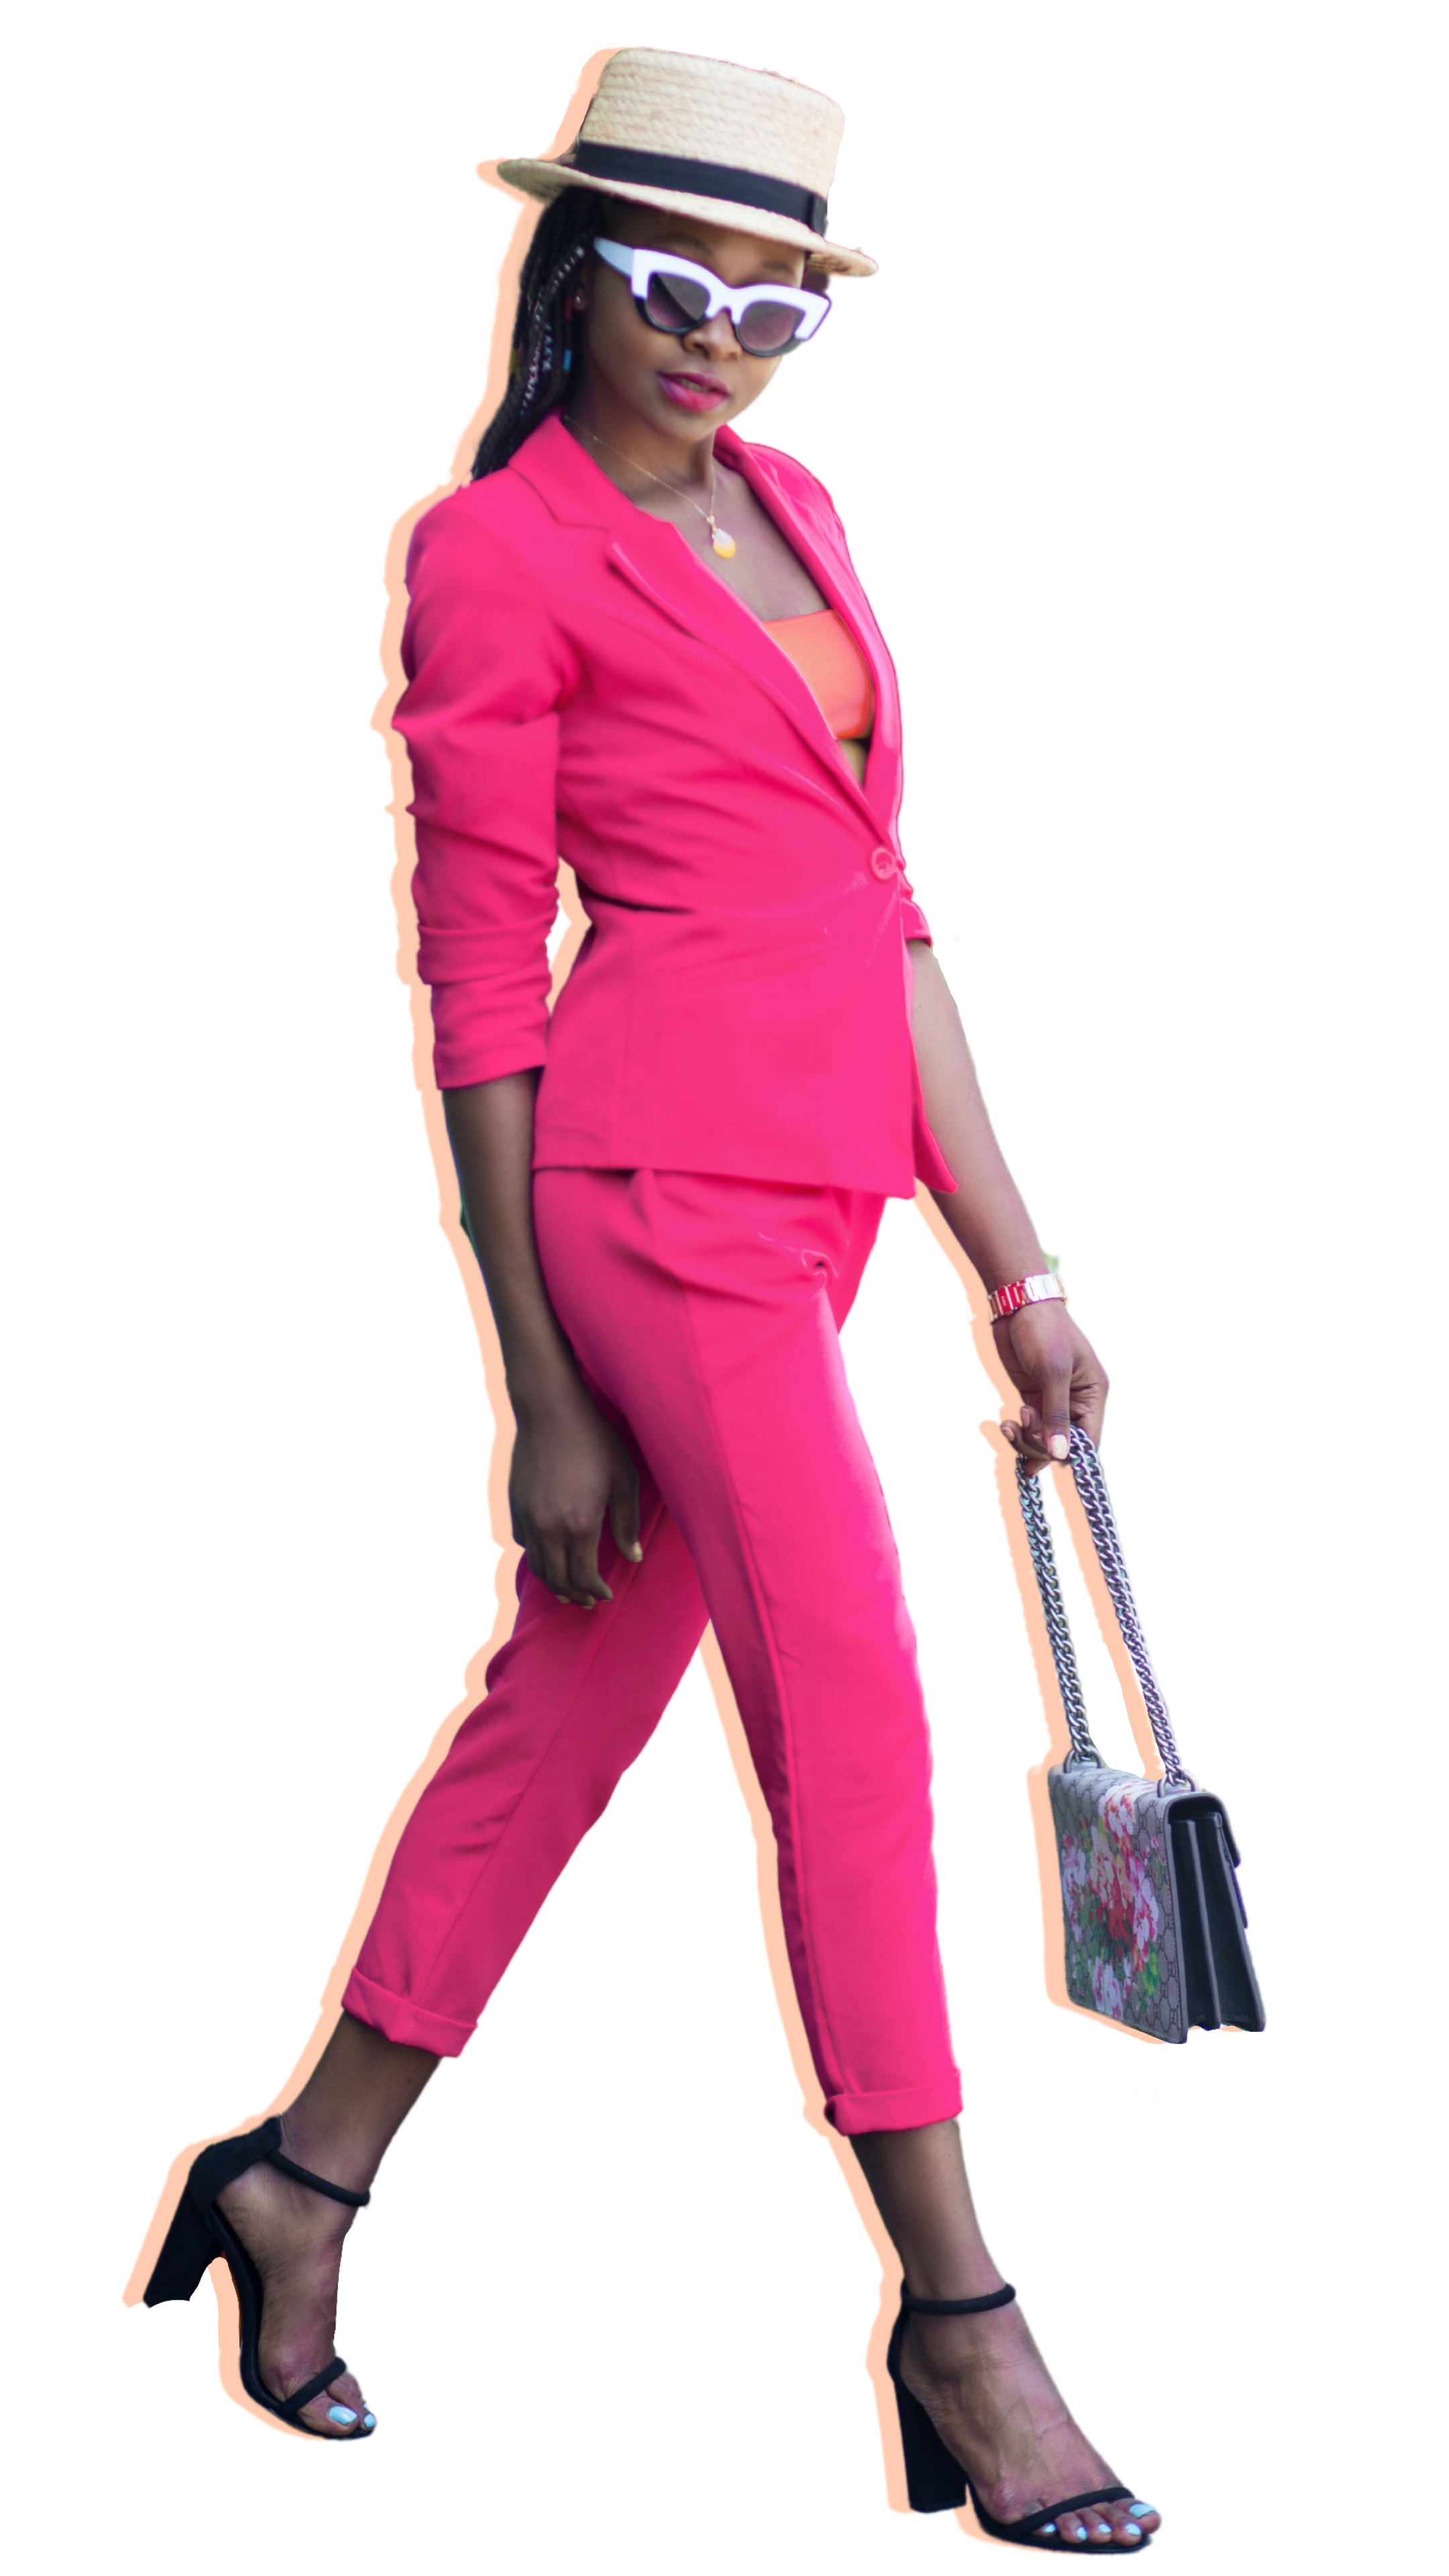 Cut out of concrete cowgirl walking in pink pants suit